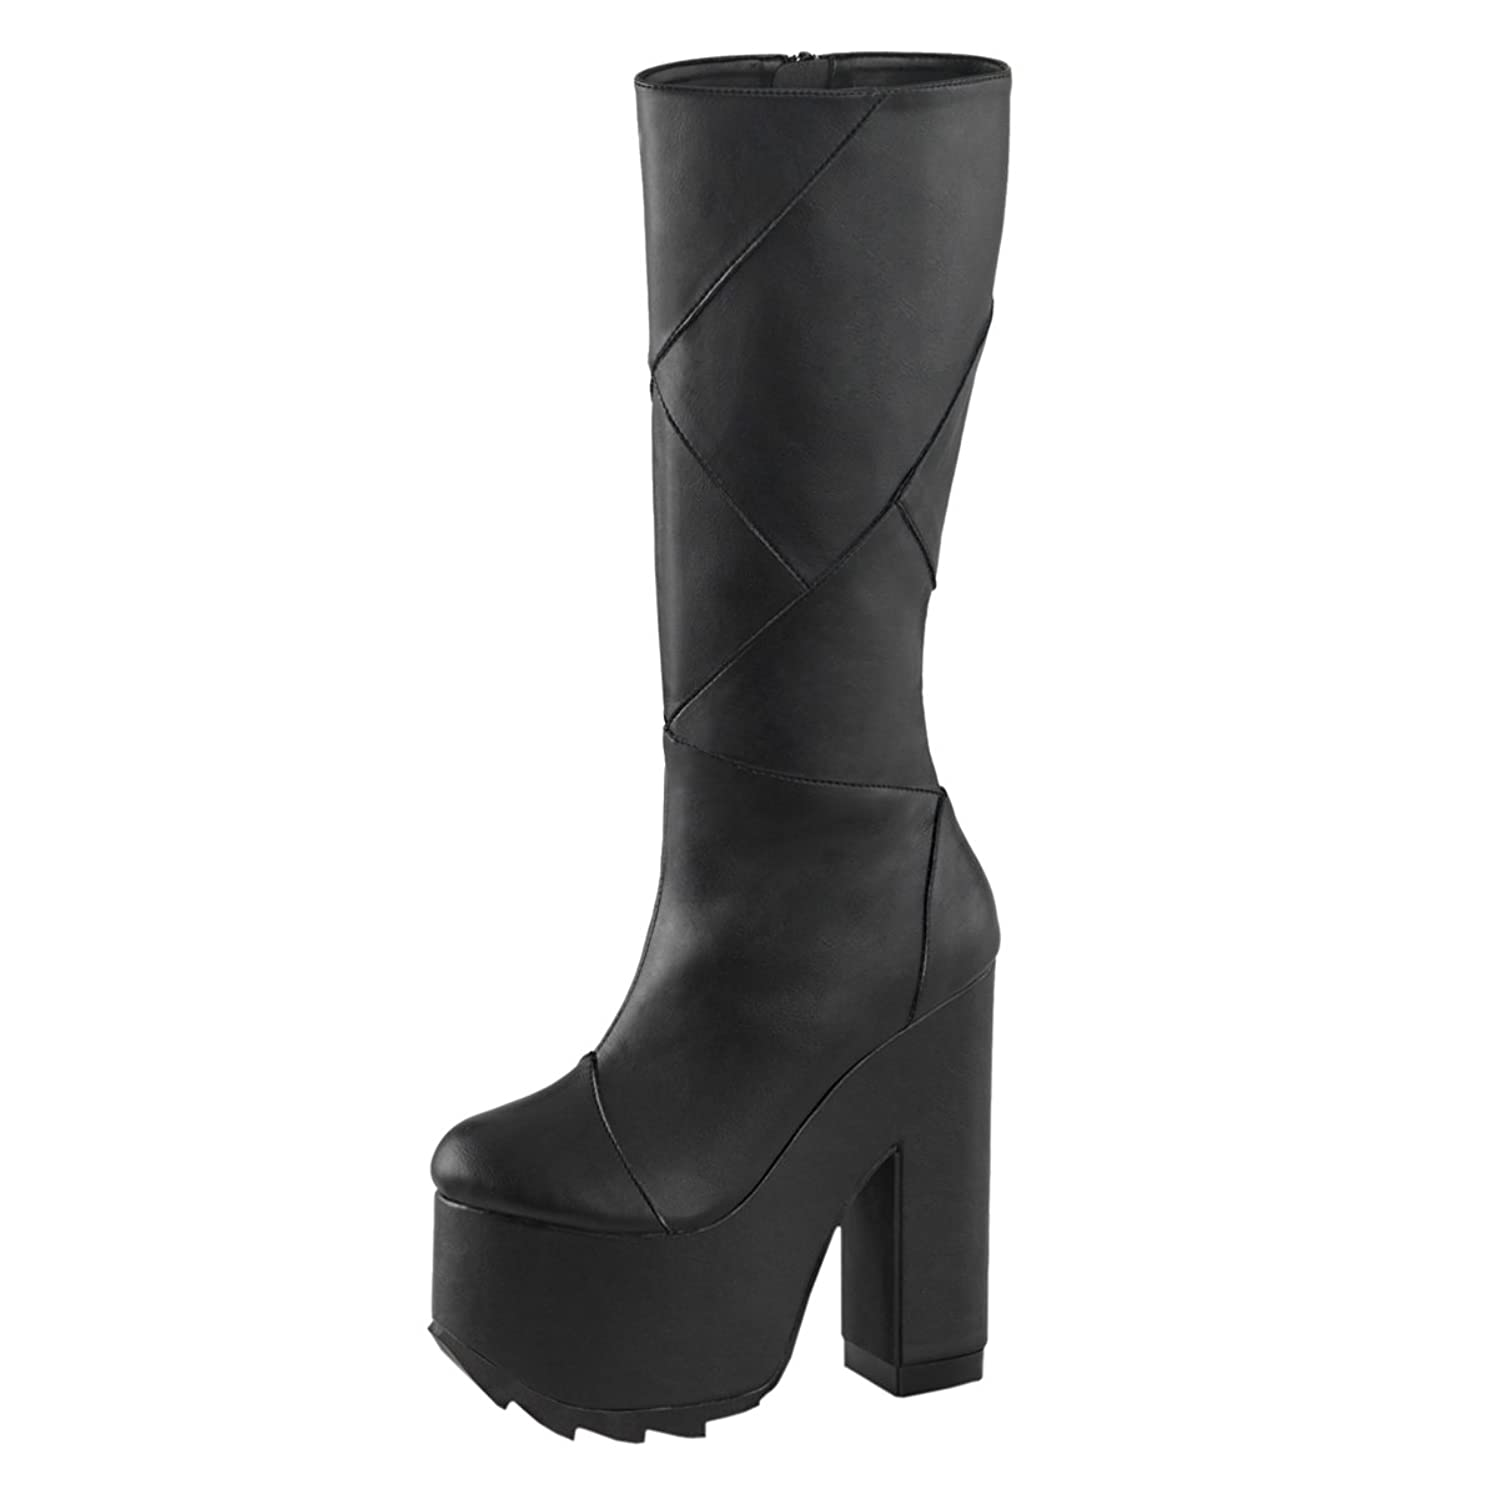 Summitfashions Womens Gothic Platform Boots Vegan Leather Black Knee in High Boots 6 1/4 in Knee Heel B01EP31M1I 8 B(M) US c9d06e